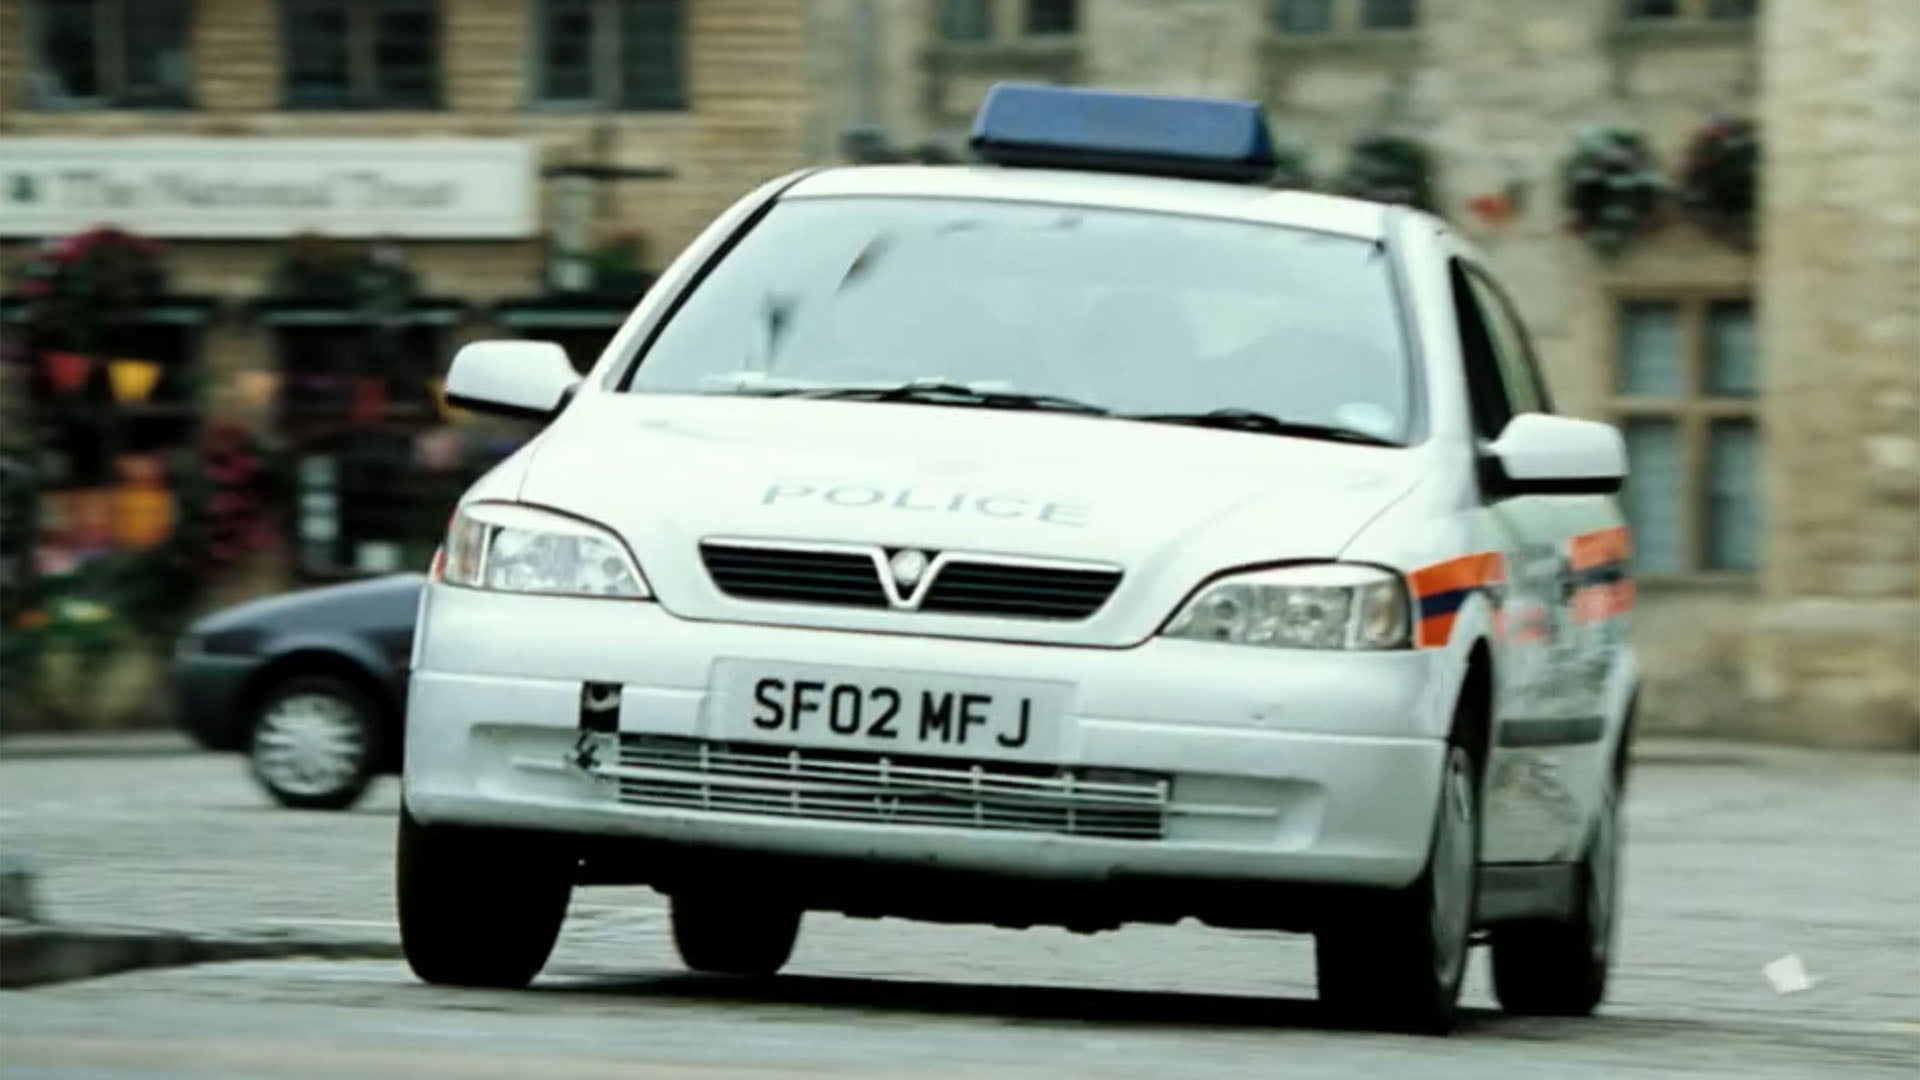 Vauxhall Astra police car Hot Fuzz